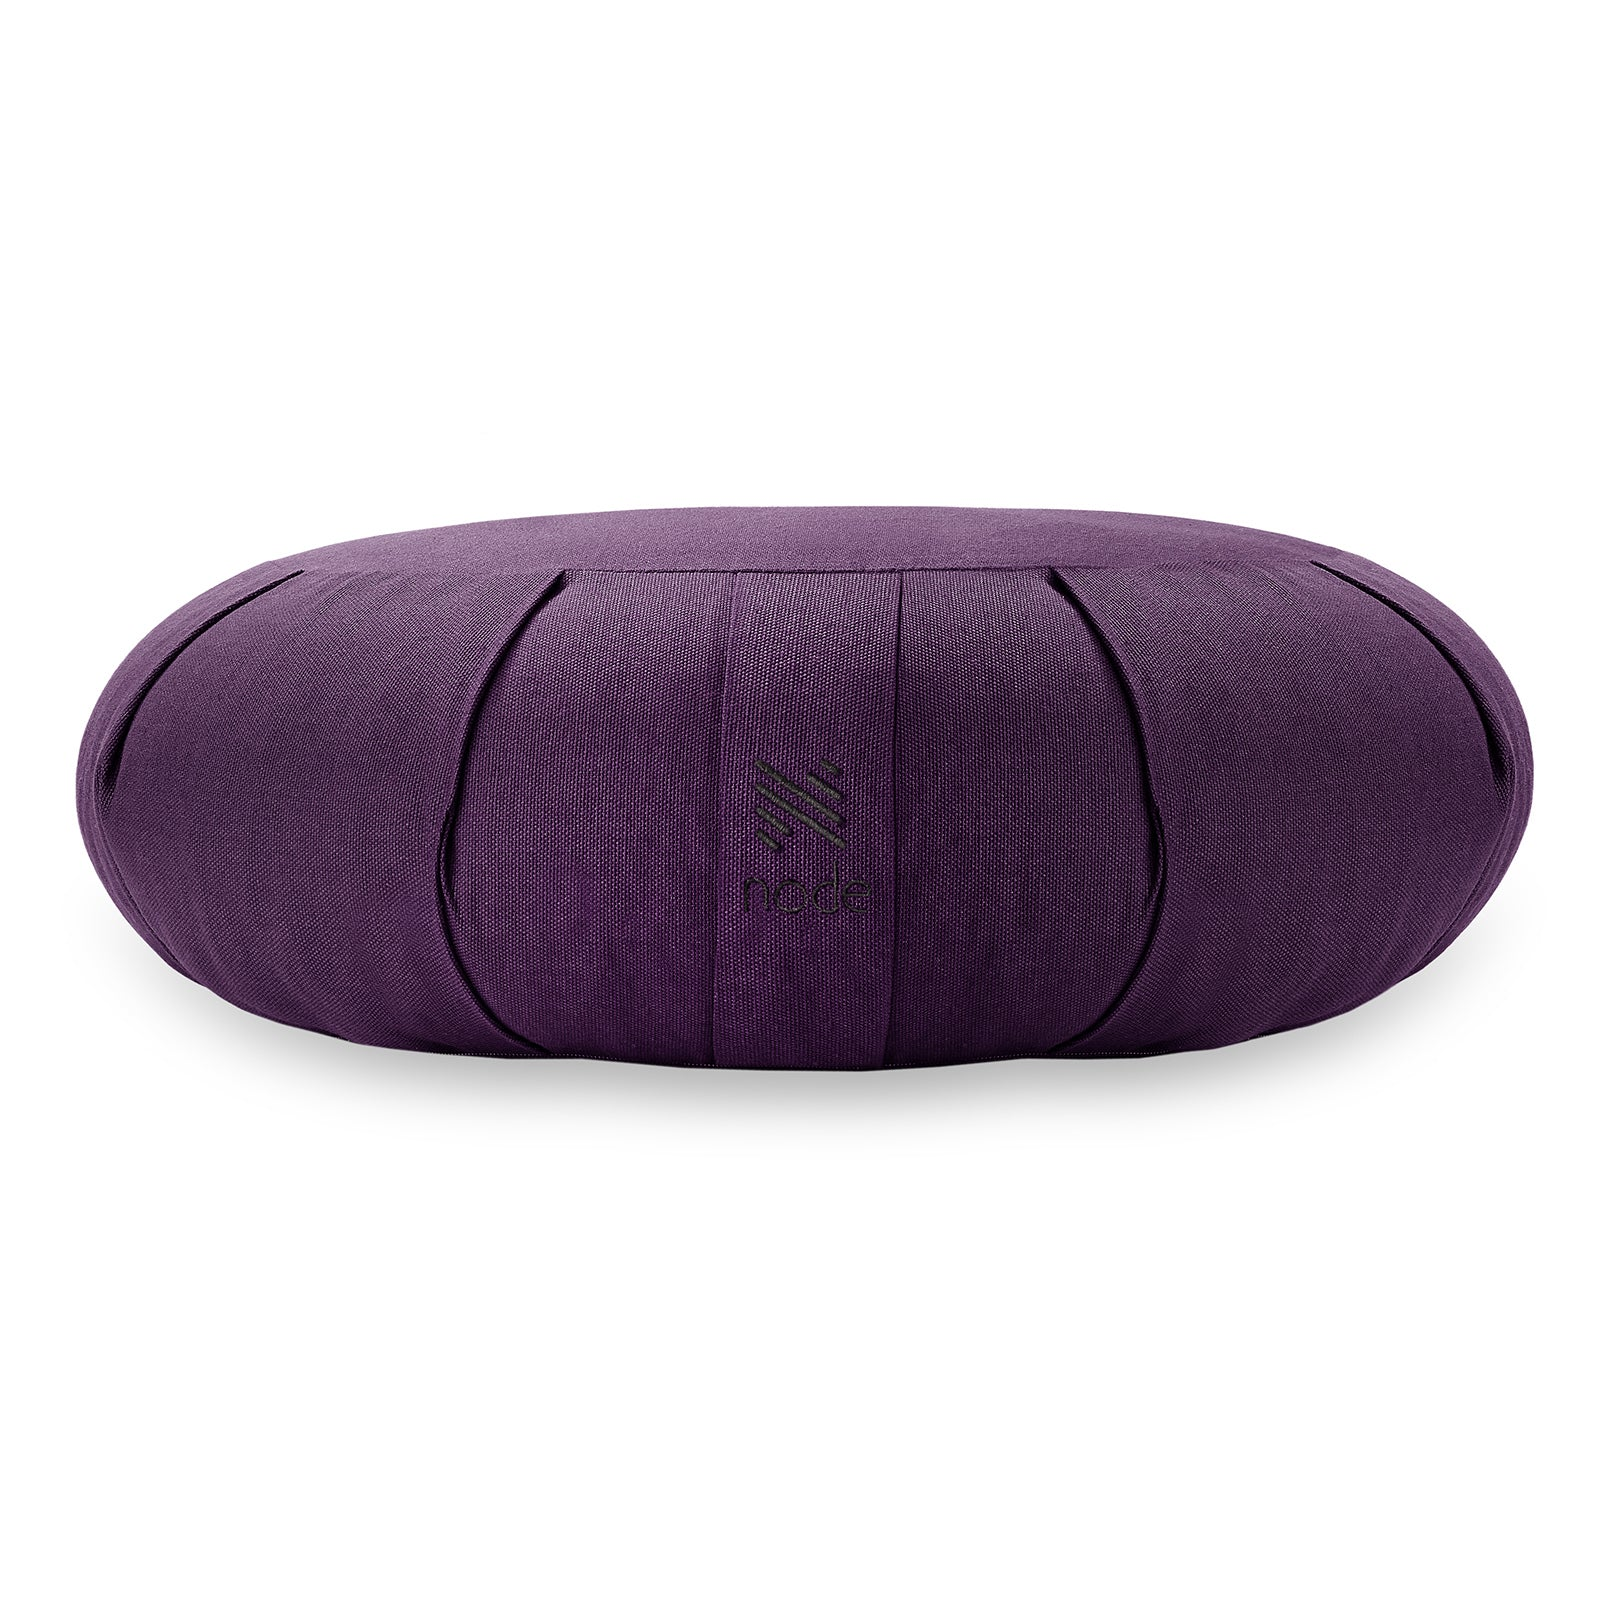 "Premium Meditation Cushion Pillow Crescent Organic 17"" - Morealis"